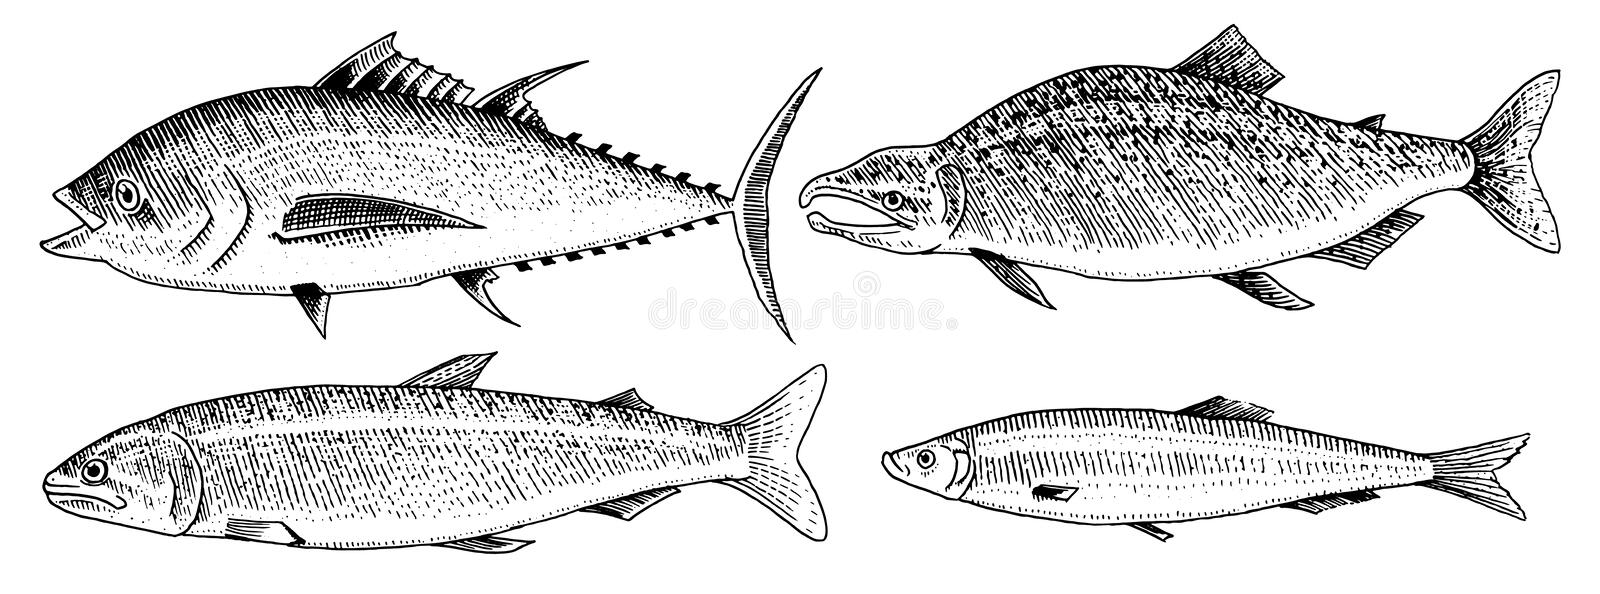 River and lake fish. Salmon and rainbow trout, tuna and herring, seawater and freshwater carp. freshwater aquarium vector illustration